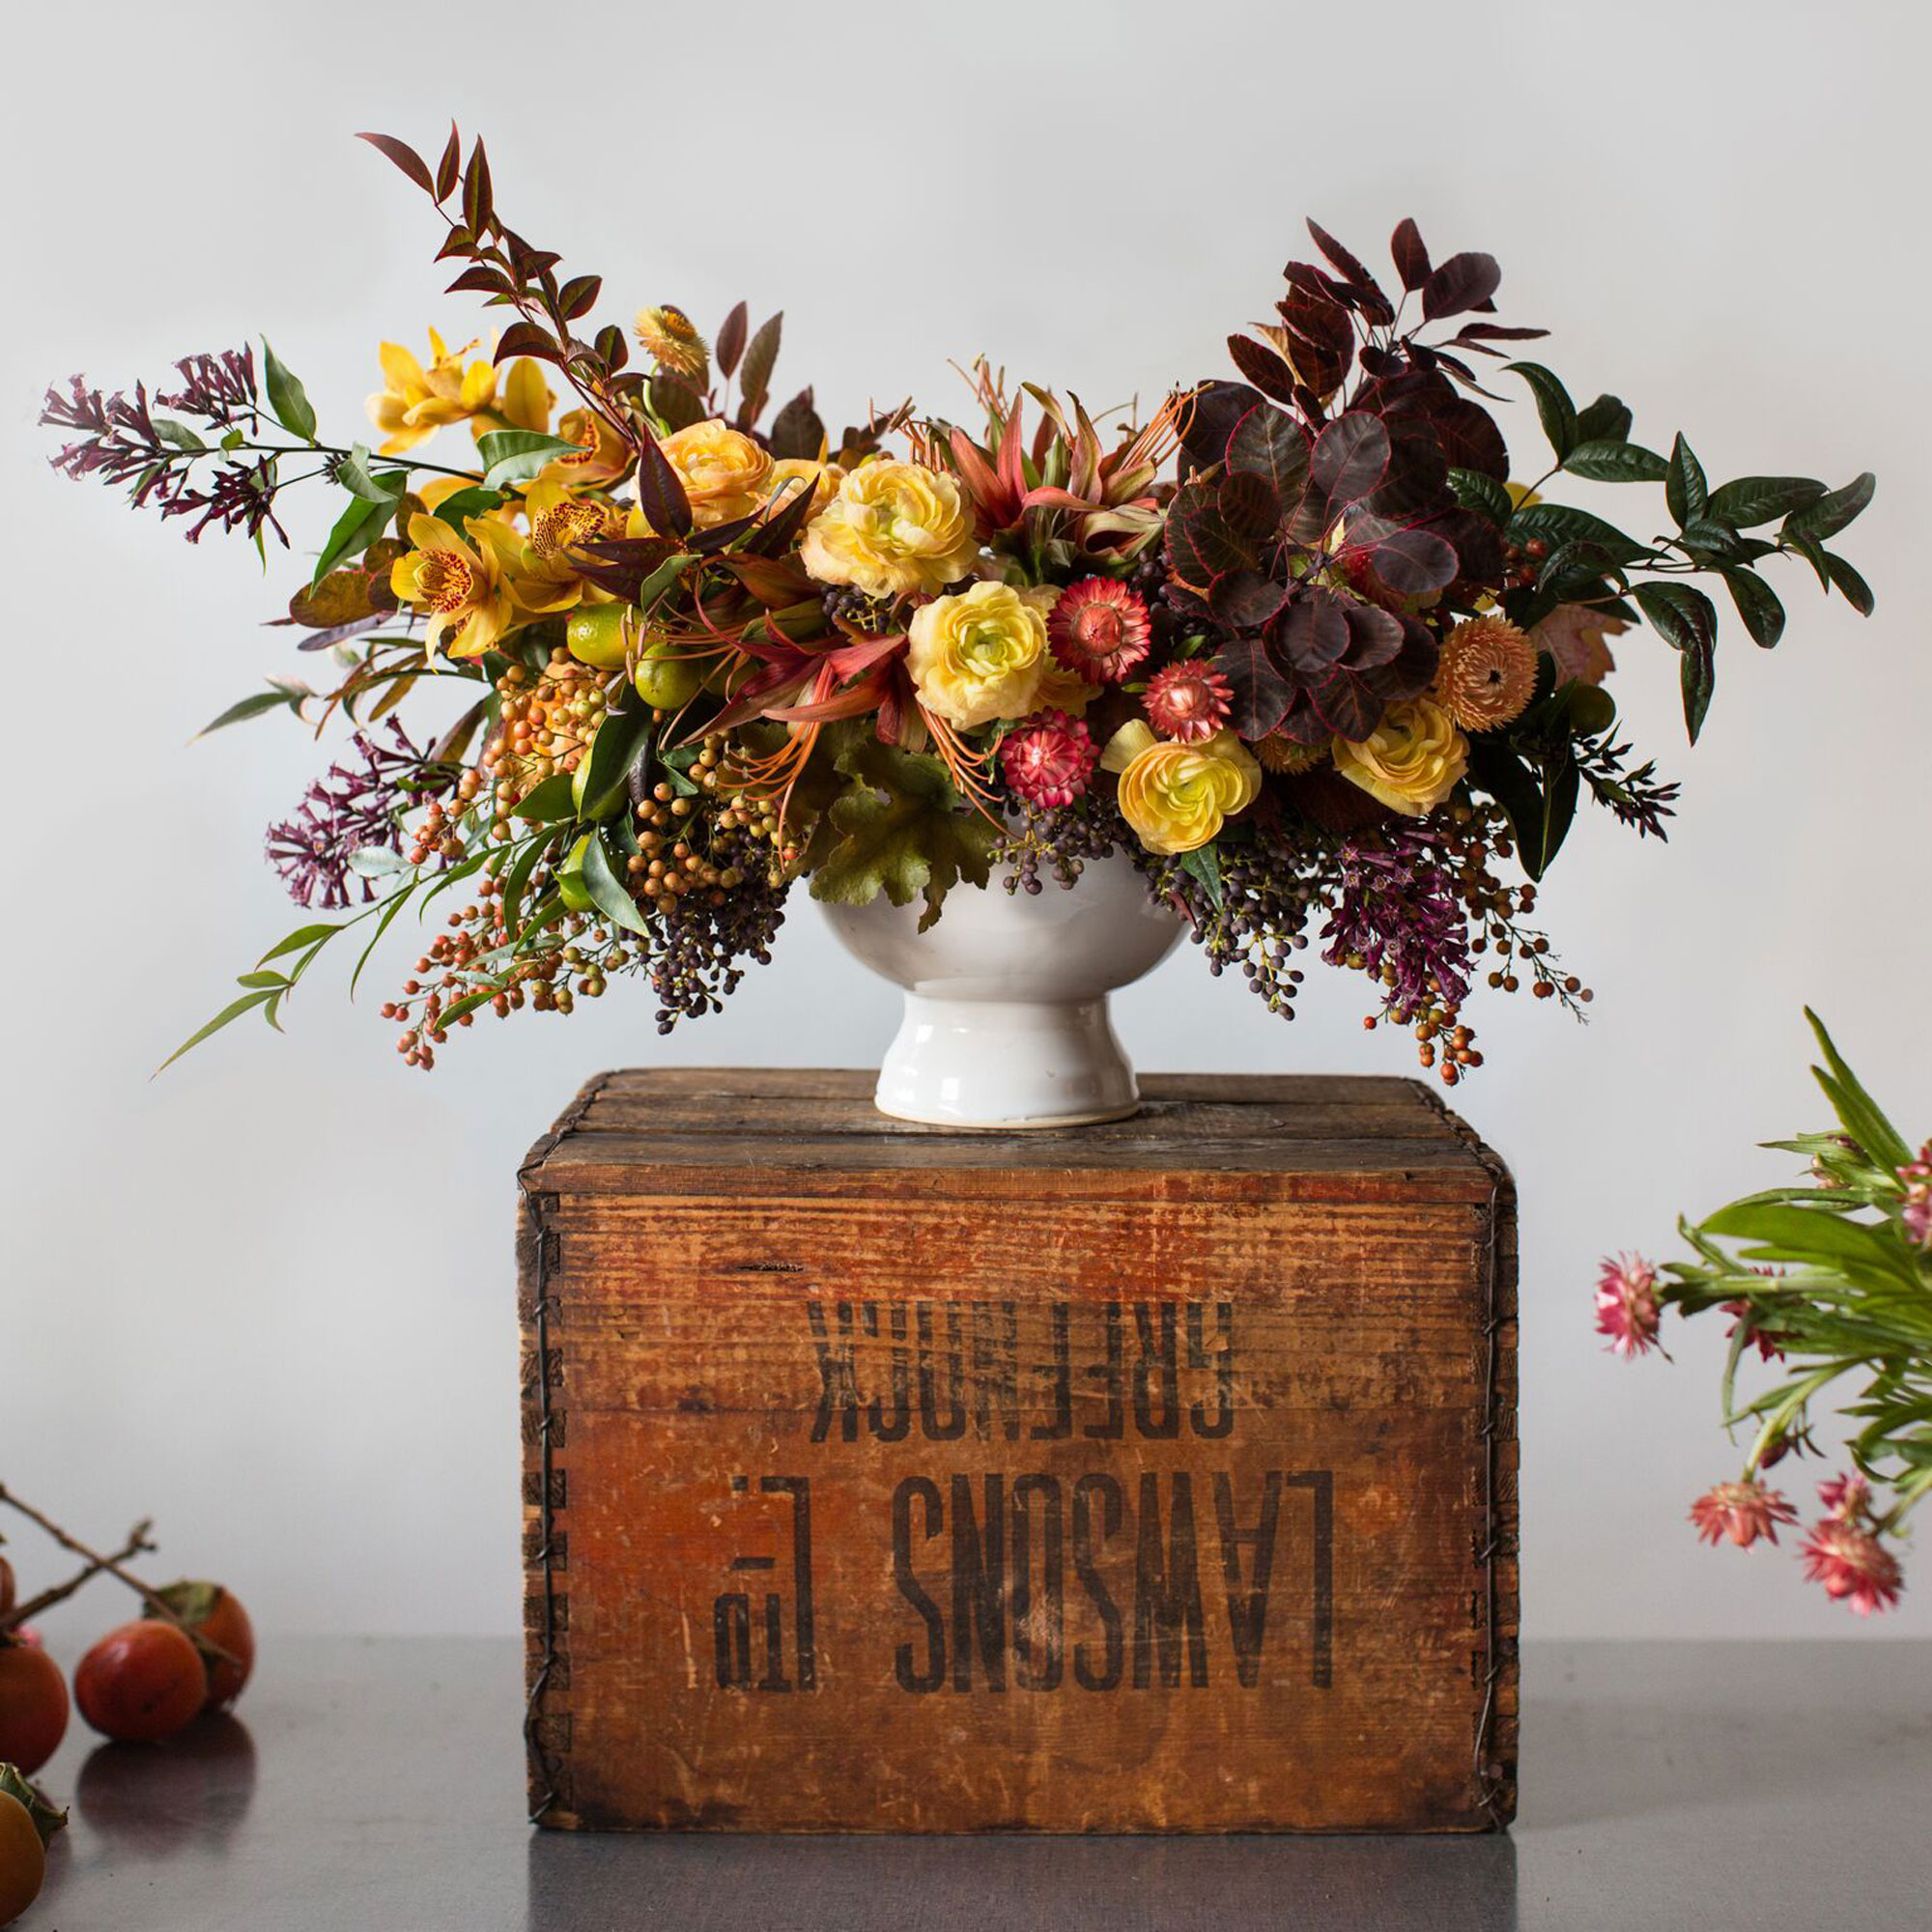 Ingenious Floral Arrangements Sunset Sunset Magazine